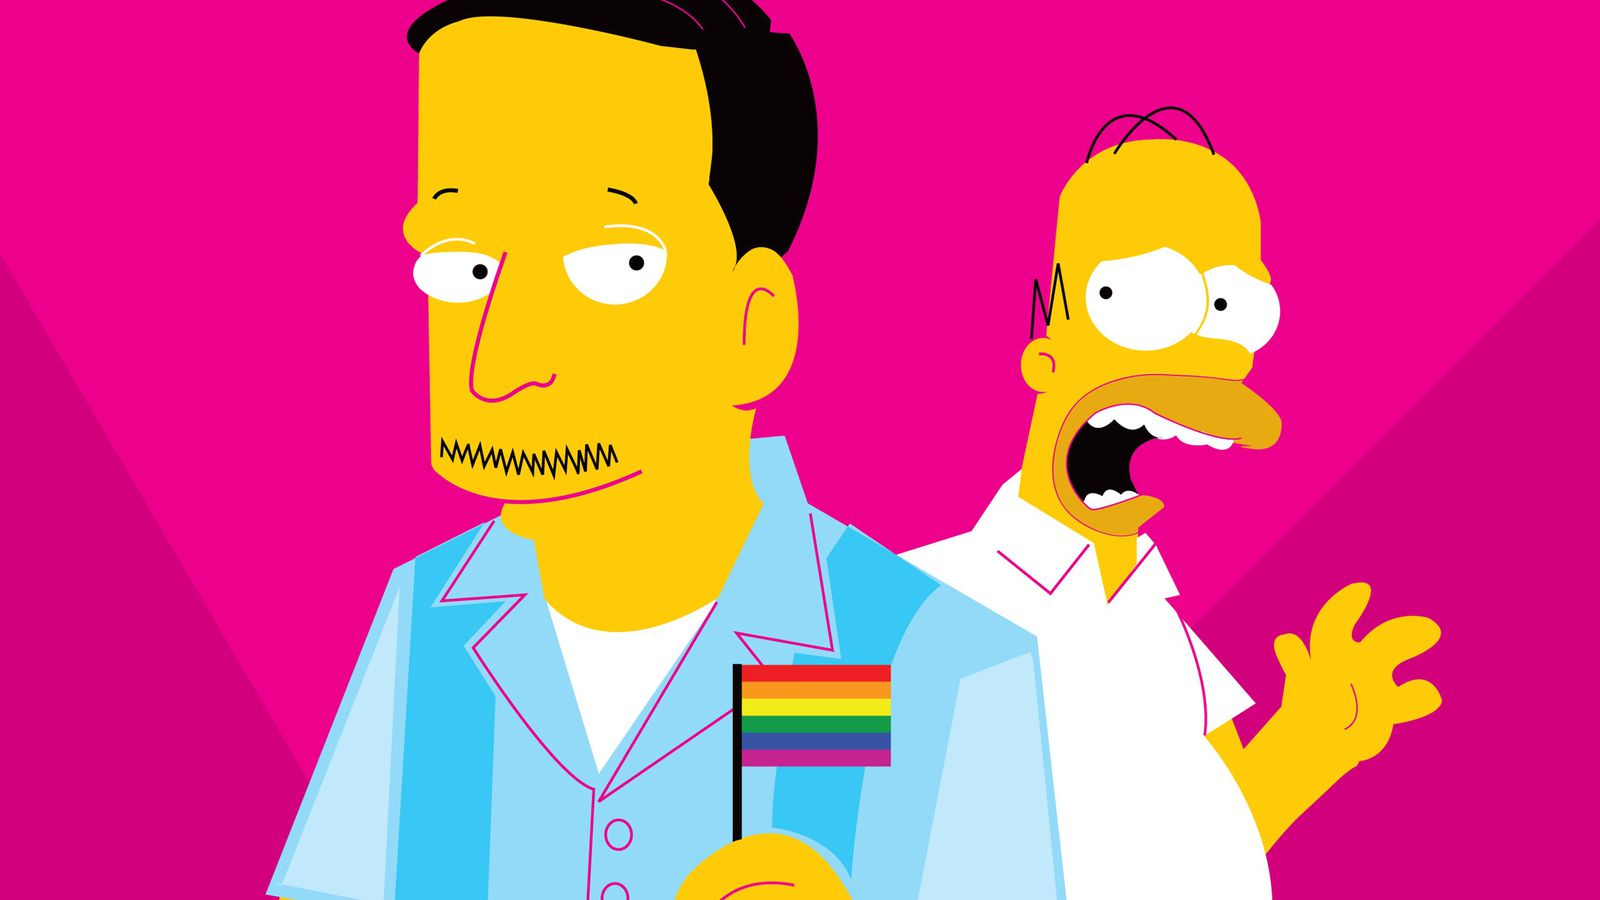 simpsons I the was gay so